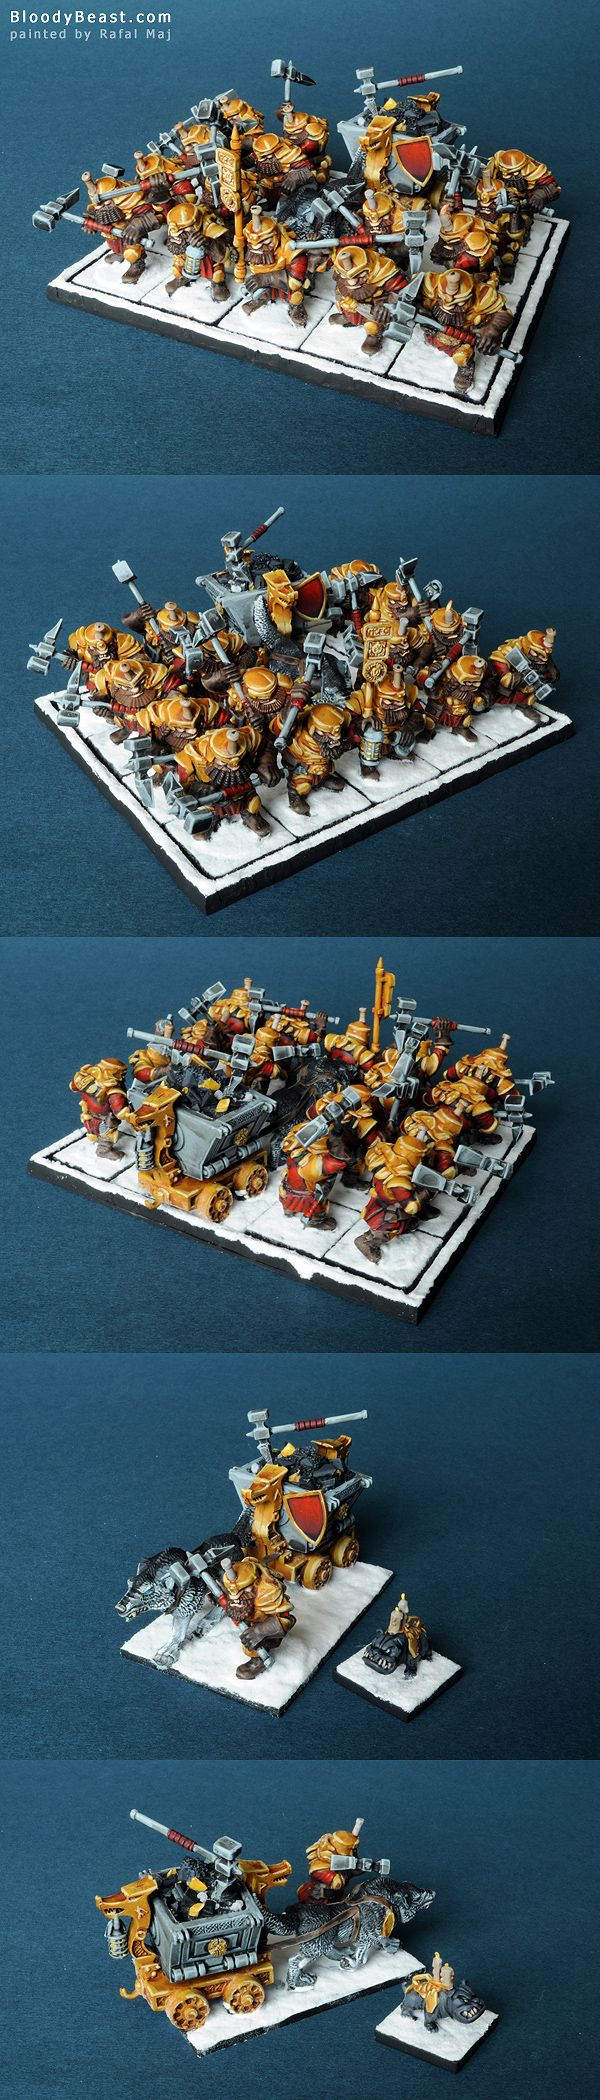 Miners are converted from Mantic Dwarf IronClads and Shieldbreakers. Painted to match the rest of Mantic Dwarf Army. Those Dwarfs have pick-hammers and are able to be fielded as both: Miners with f...